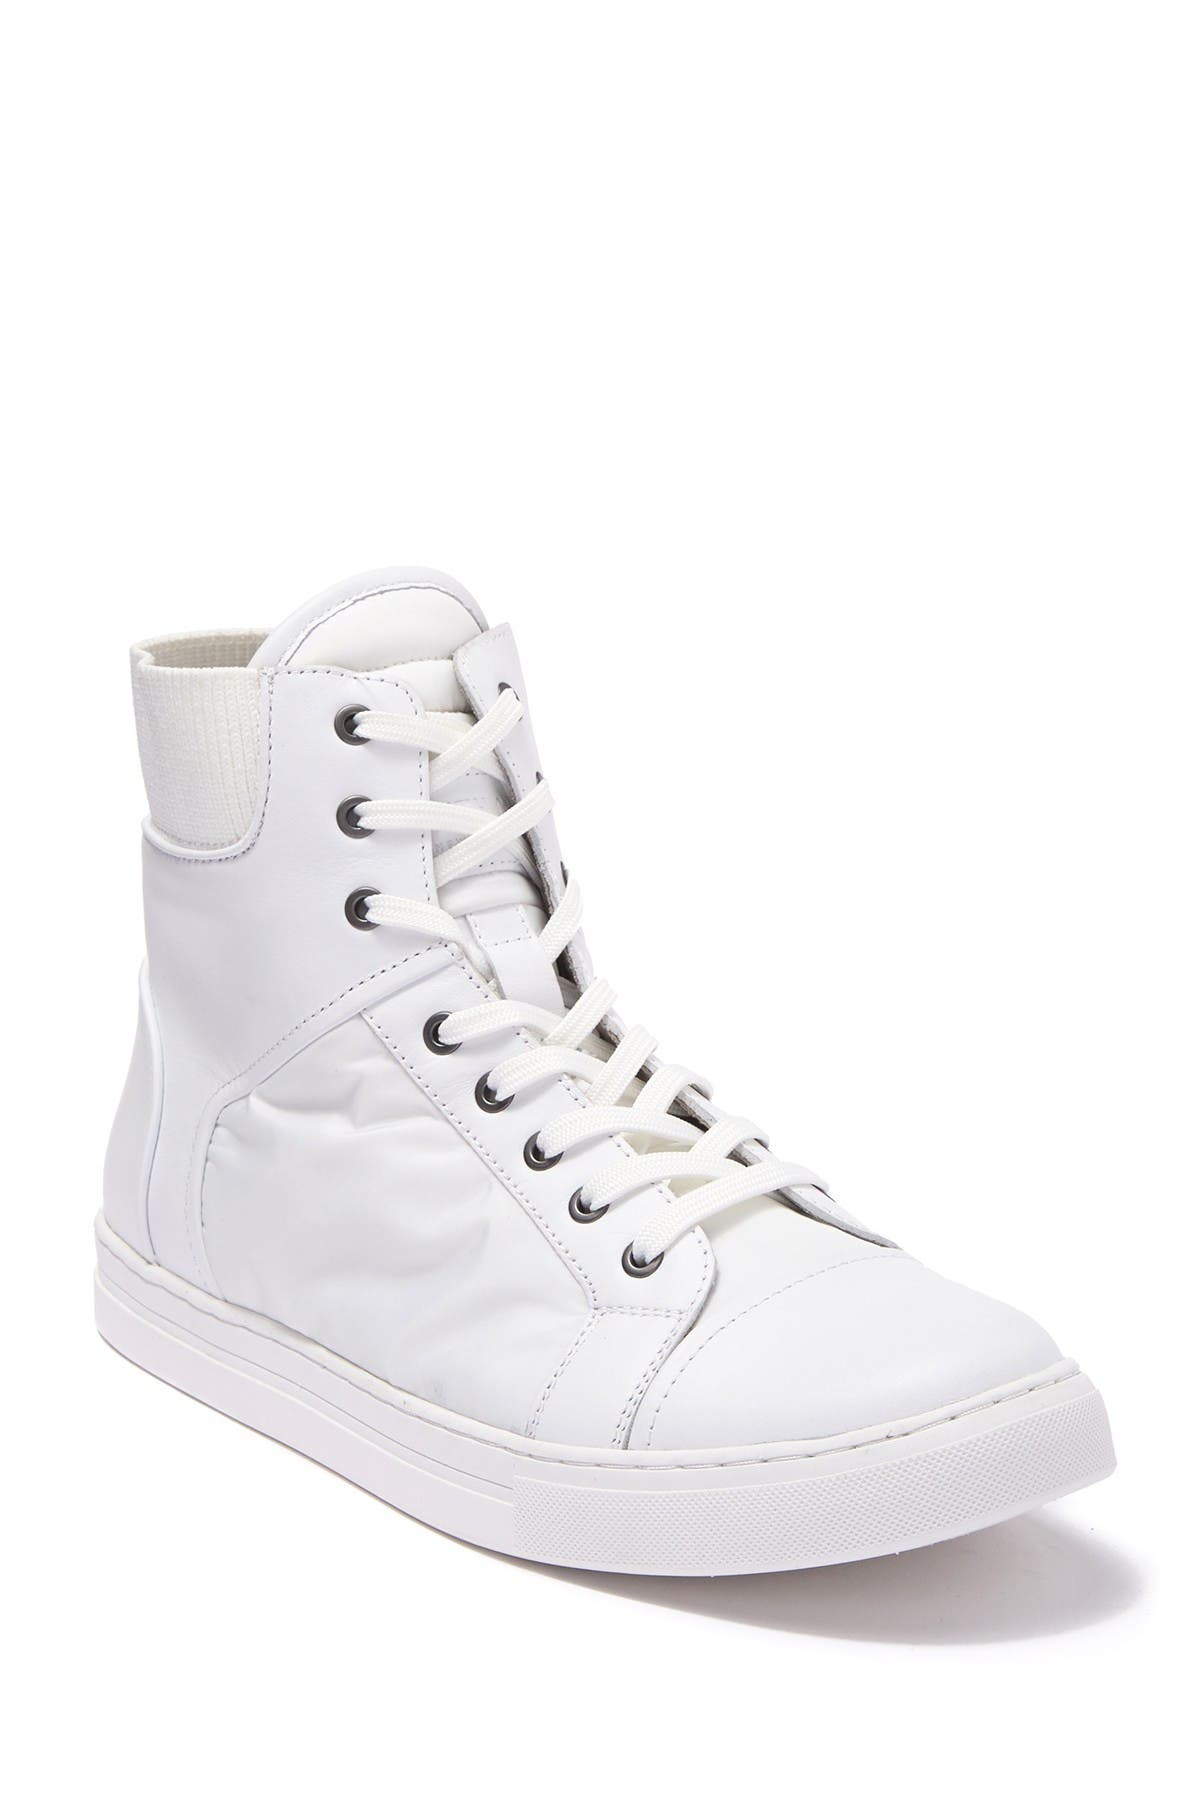 Kenneth Cole New York | Kam High Top